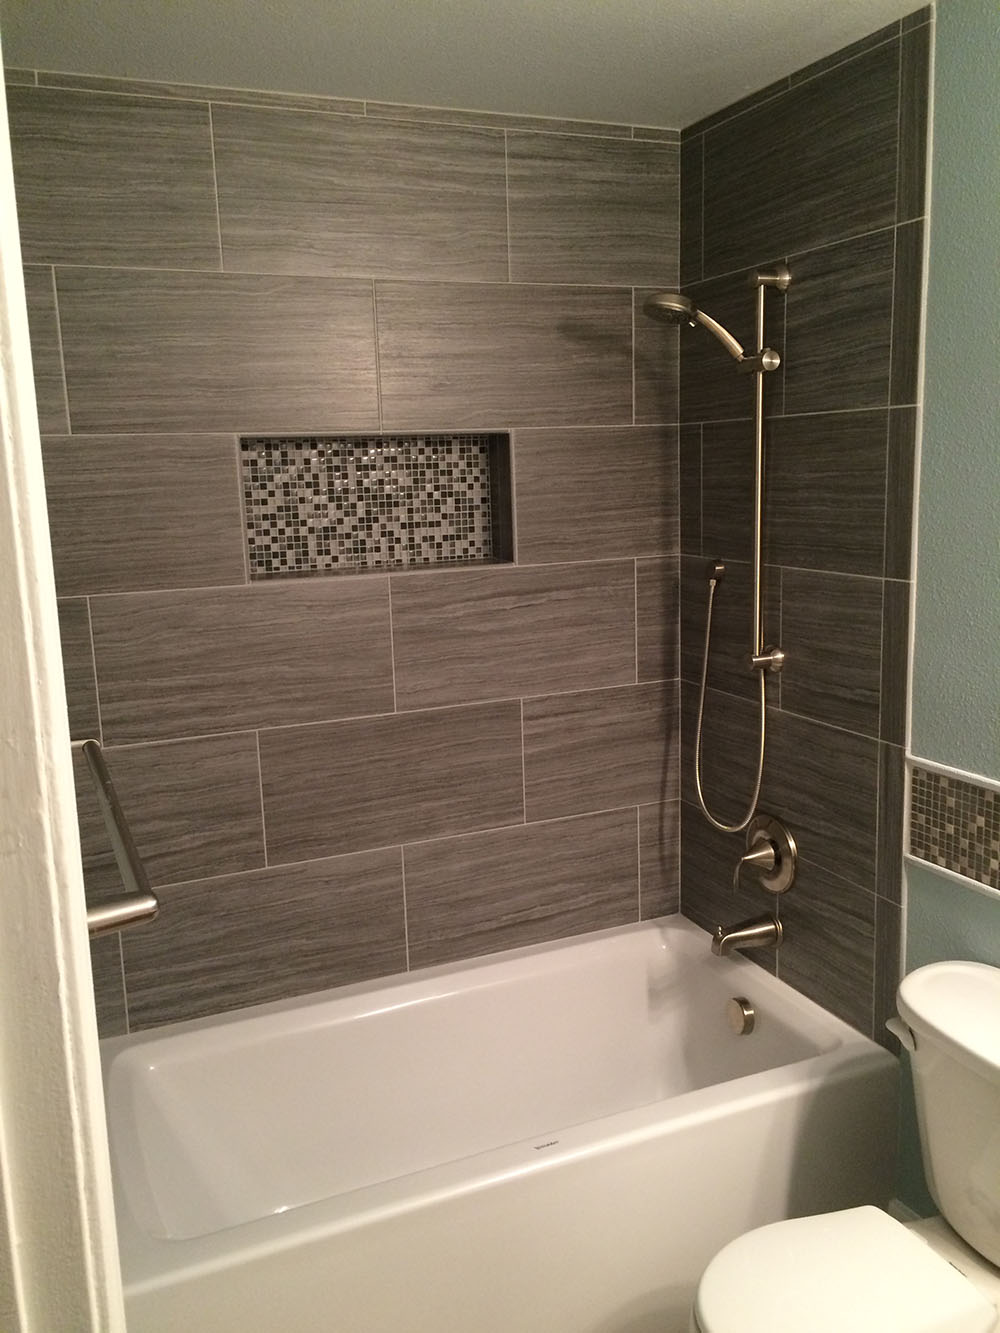 Black Cat Design Build Llc Project Hall Bath Upgrade